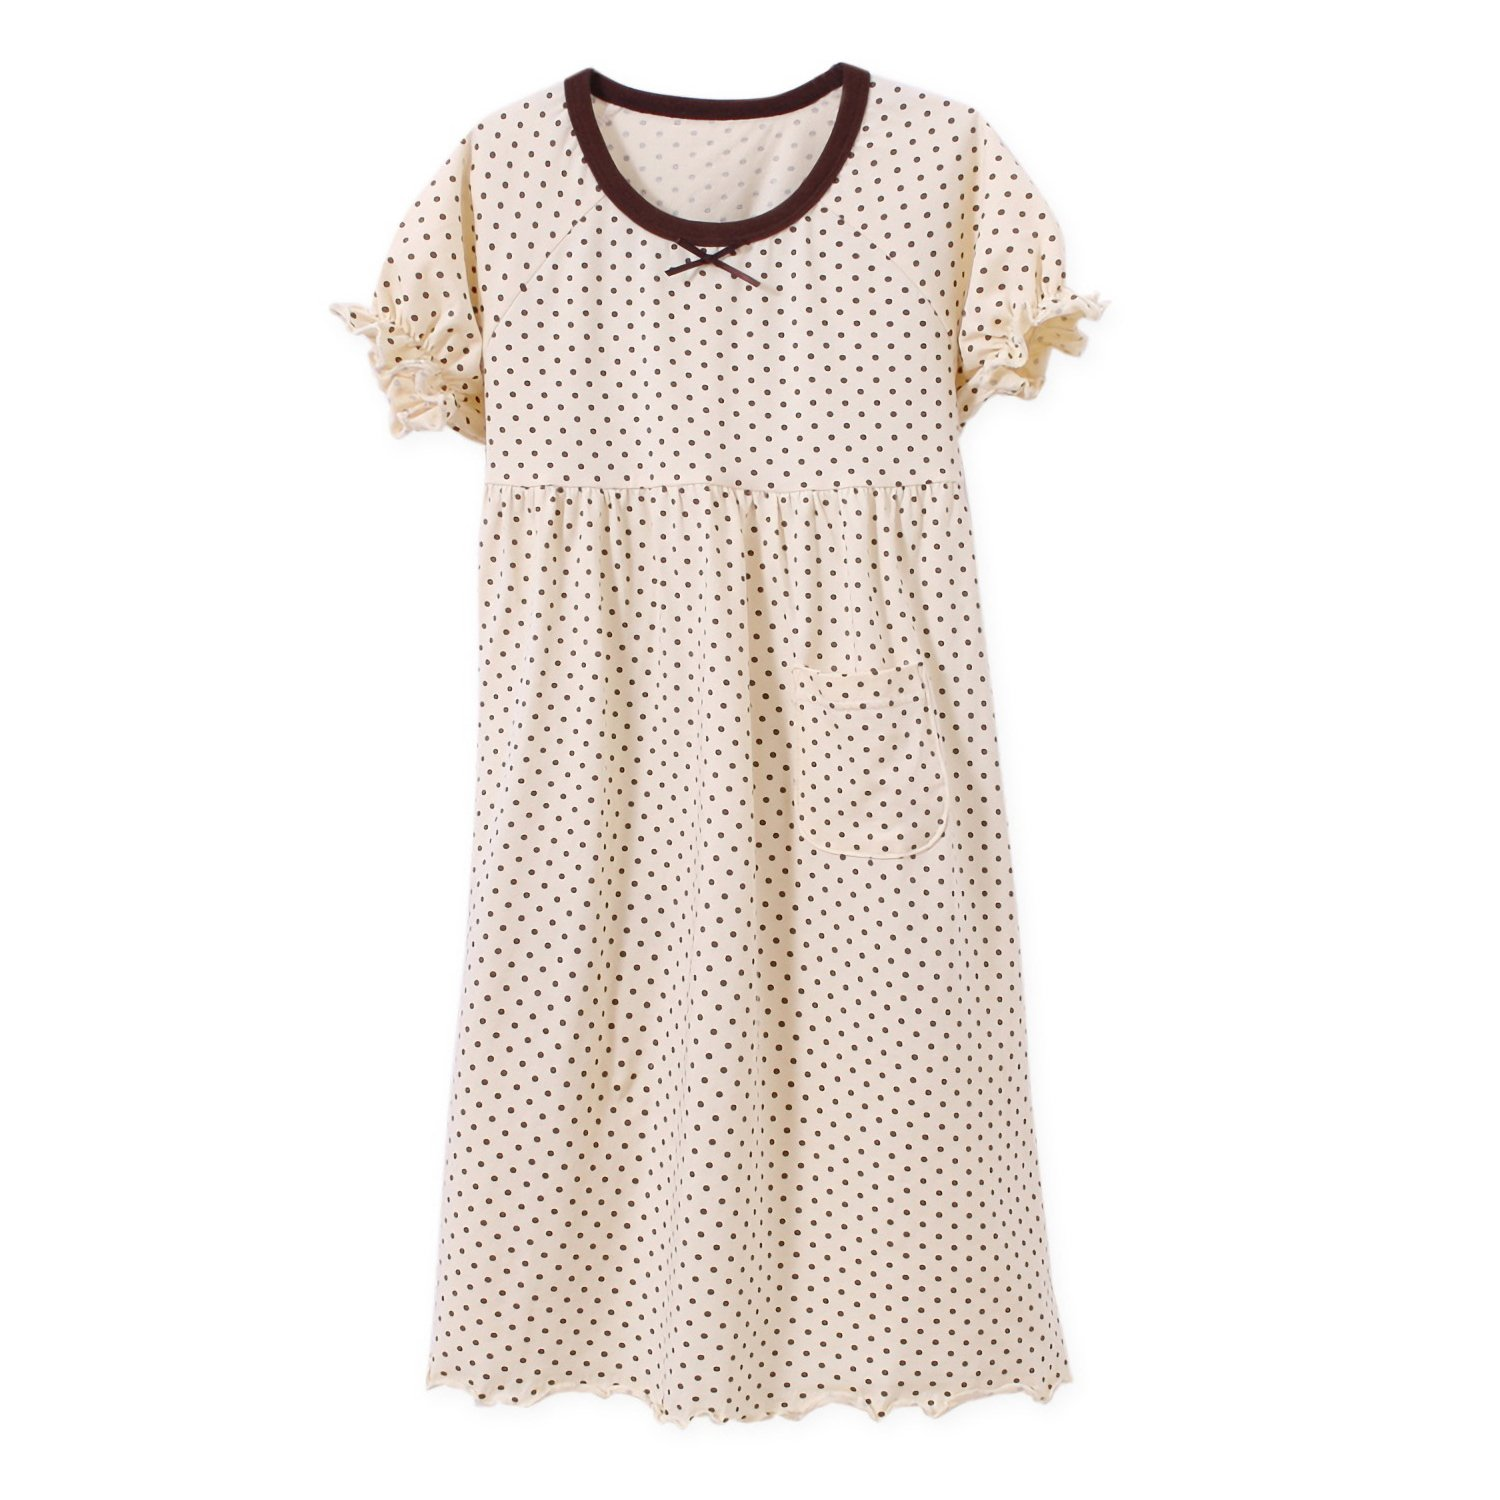 BLOMDE Girls Polka Dots Nightgowns Bowknot Sleepwear Cotton Nightdress for 3-12 Years